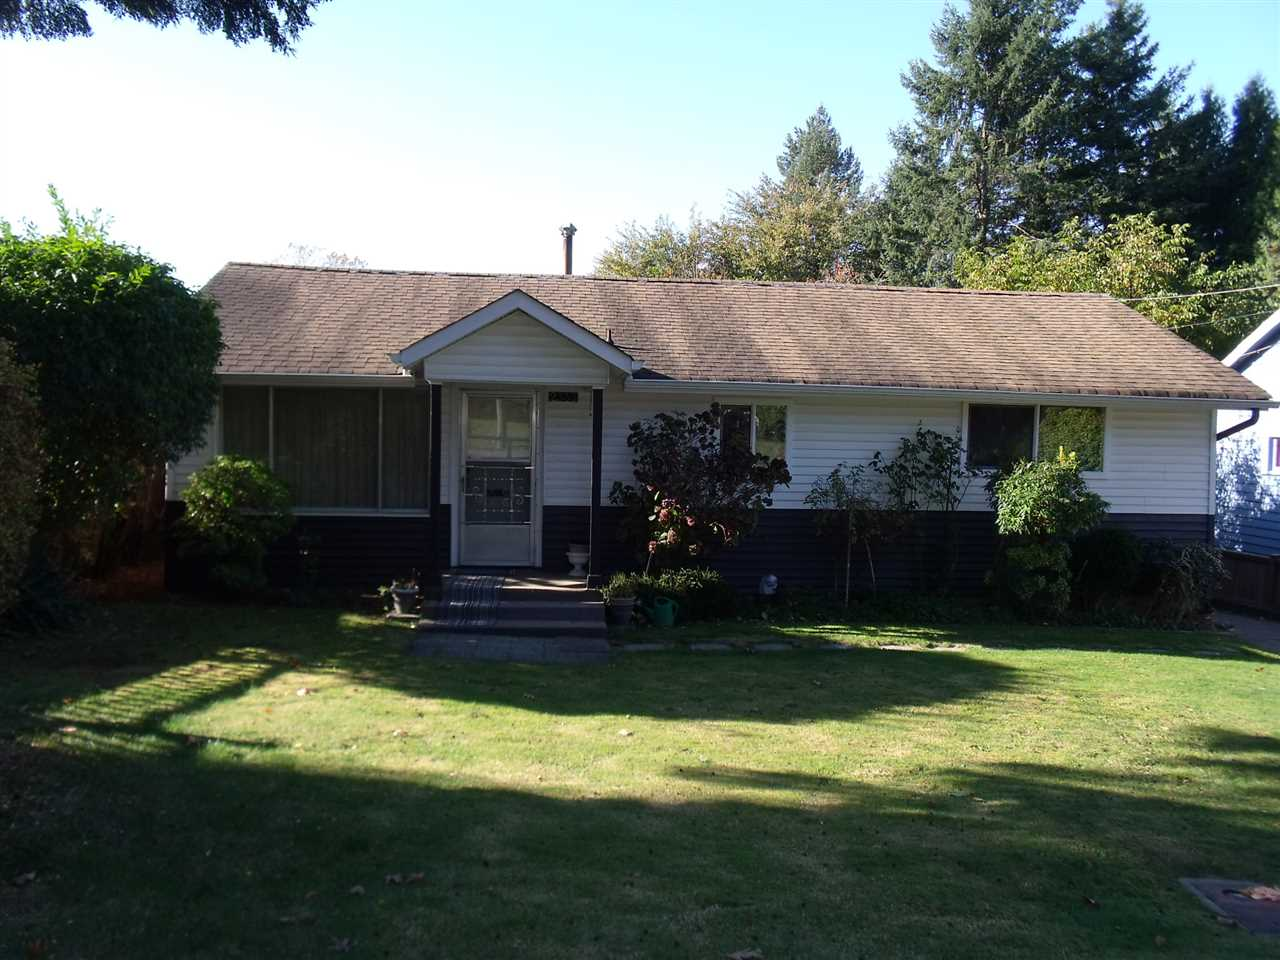 Photo 2: Photos: 2333 HILLSIDE Drive in Abbotsford: Central Abbotsford House for sale : MLS® # R2220680